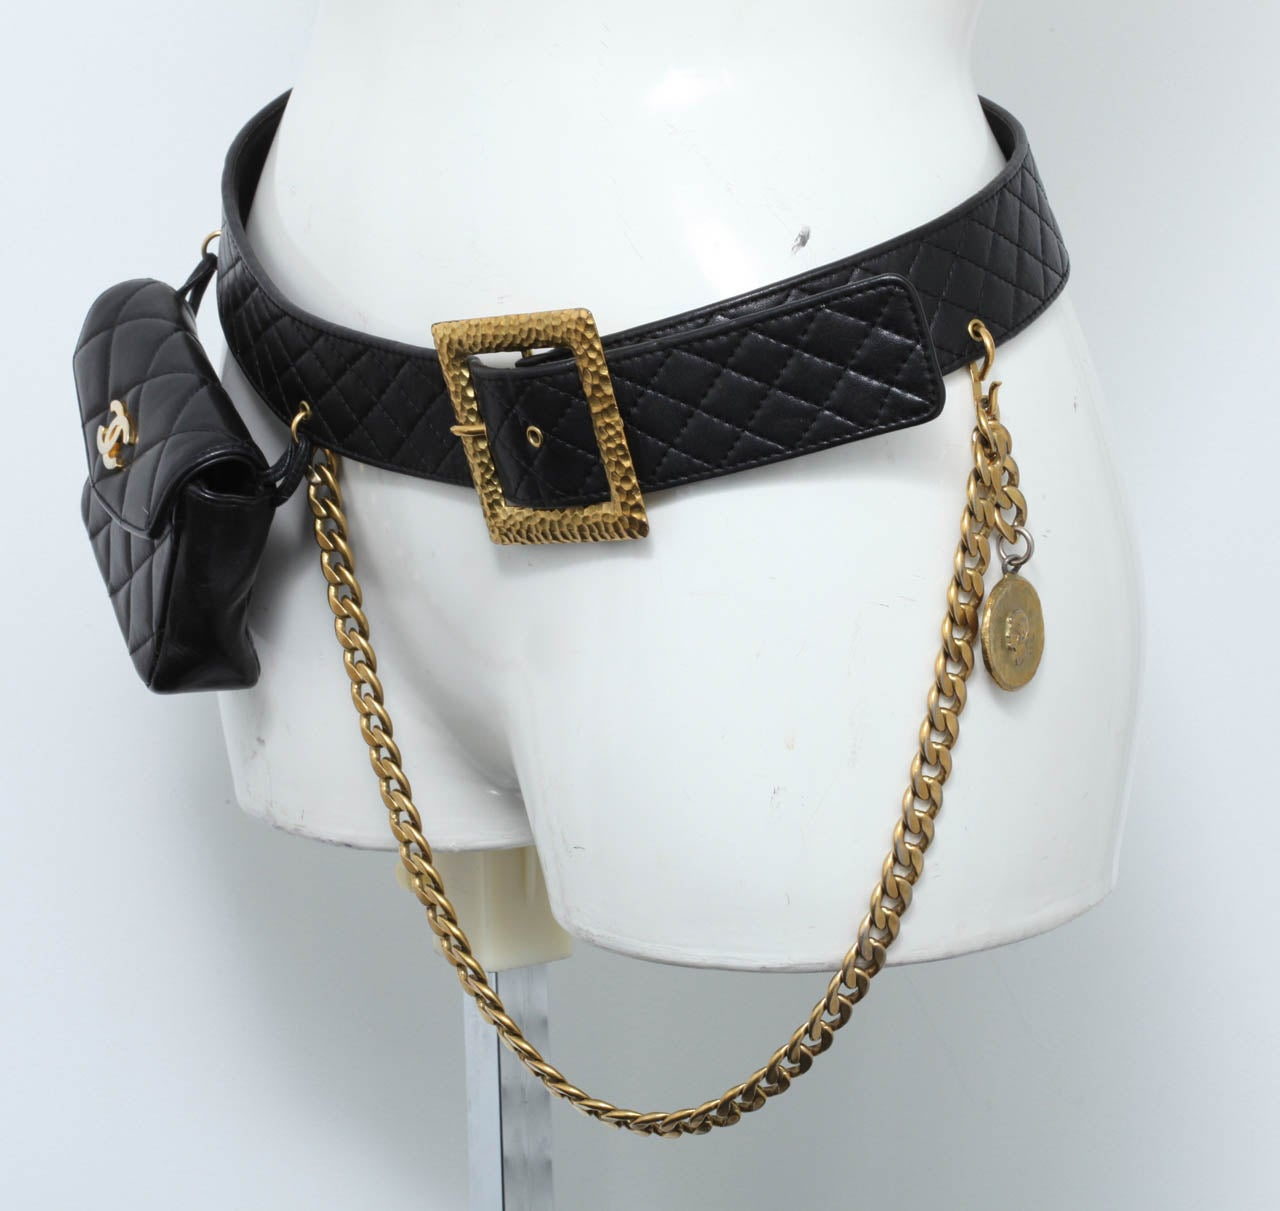 Vintage Chanel Belt with Pack and Gold Chain 6